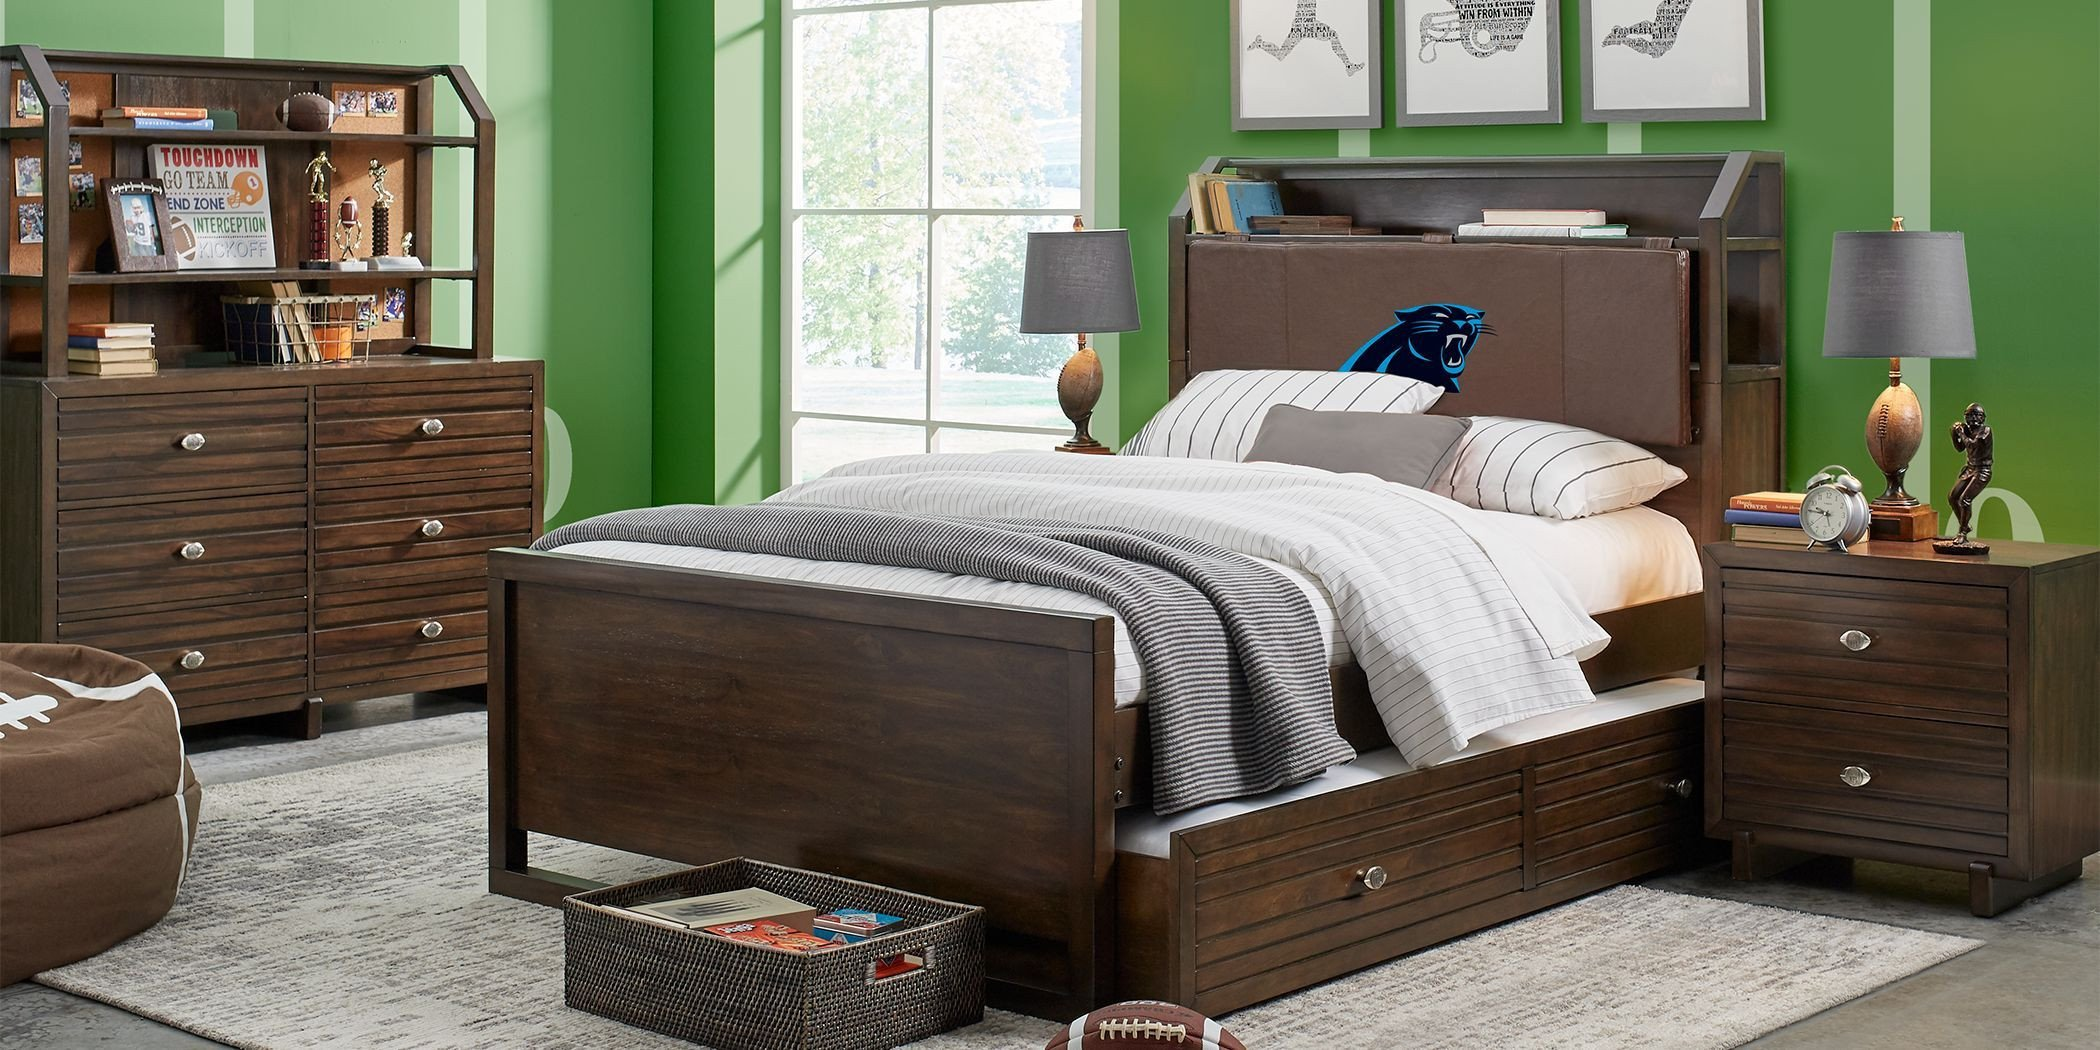 Twin Bedroom Set for Sale Inspirational Nfl 1st & Goal Carolina Panthers Brown 5 Pc Full Bookcase